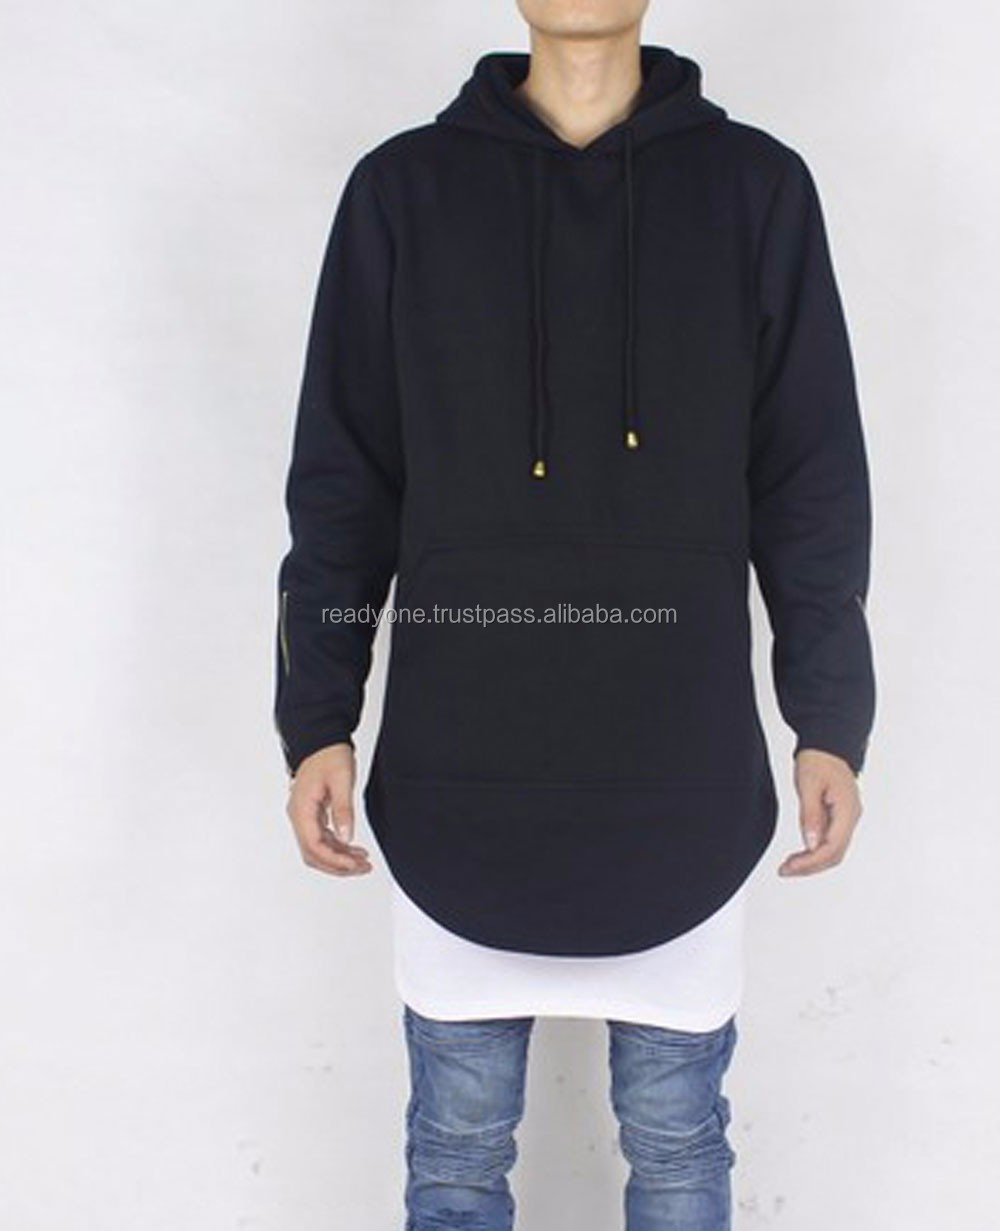 Winter Men's Fashion Pullover Clothing Bodybuilding Hoody For Muscle gym hoodies Sweatshirts